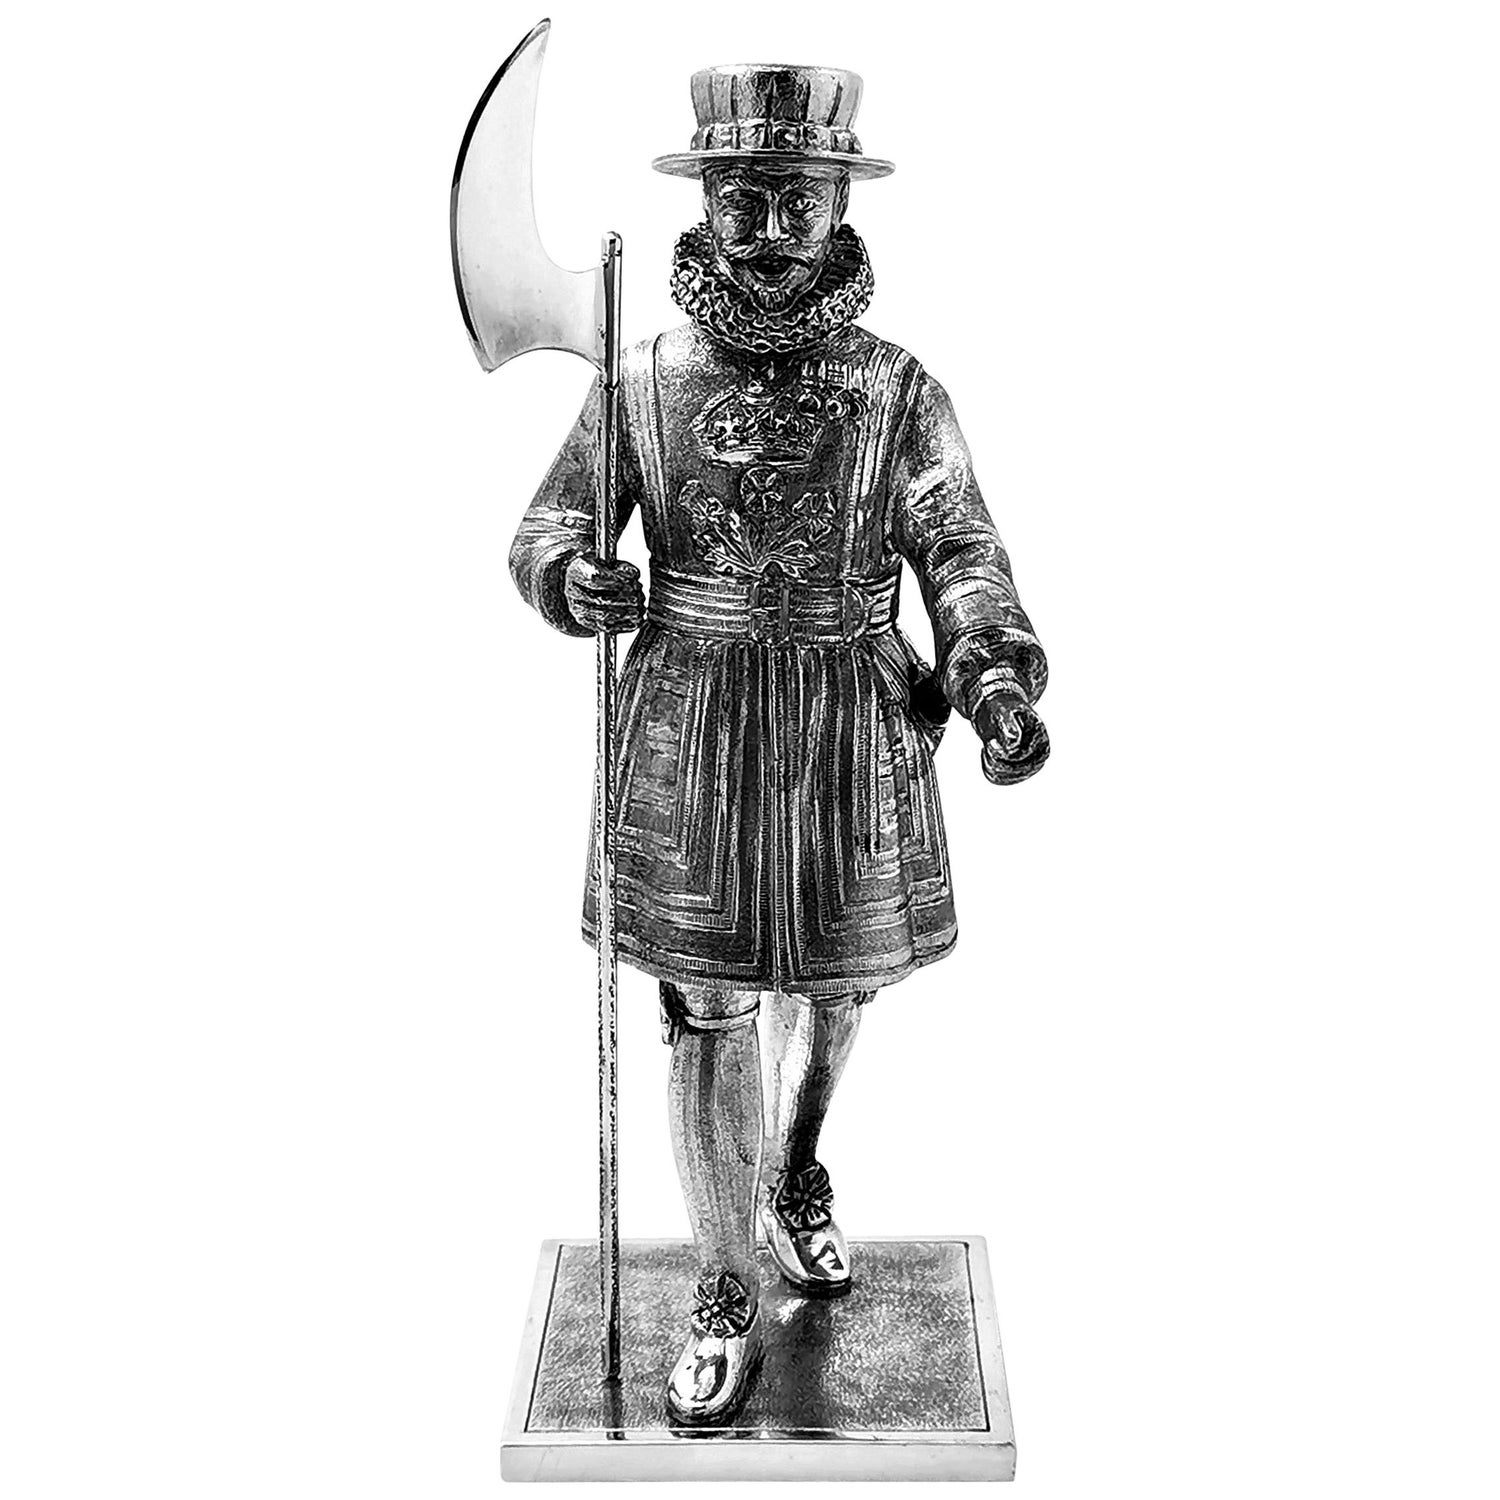 Vintage Sterling Silver Beefeater Yeoman Warder / Guard Model Figure 1968